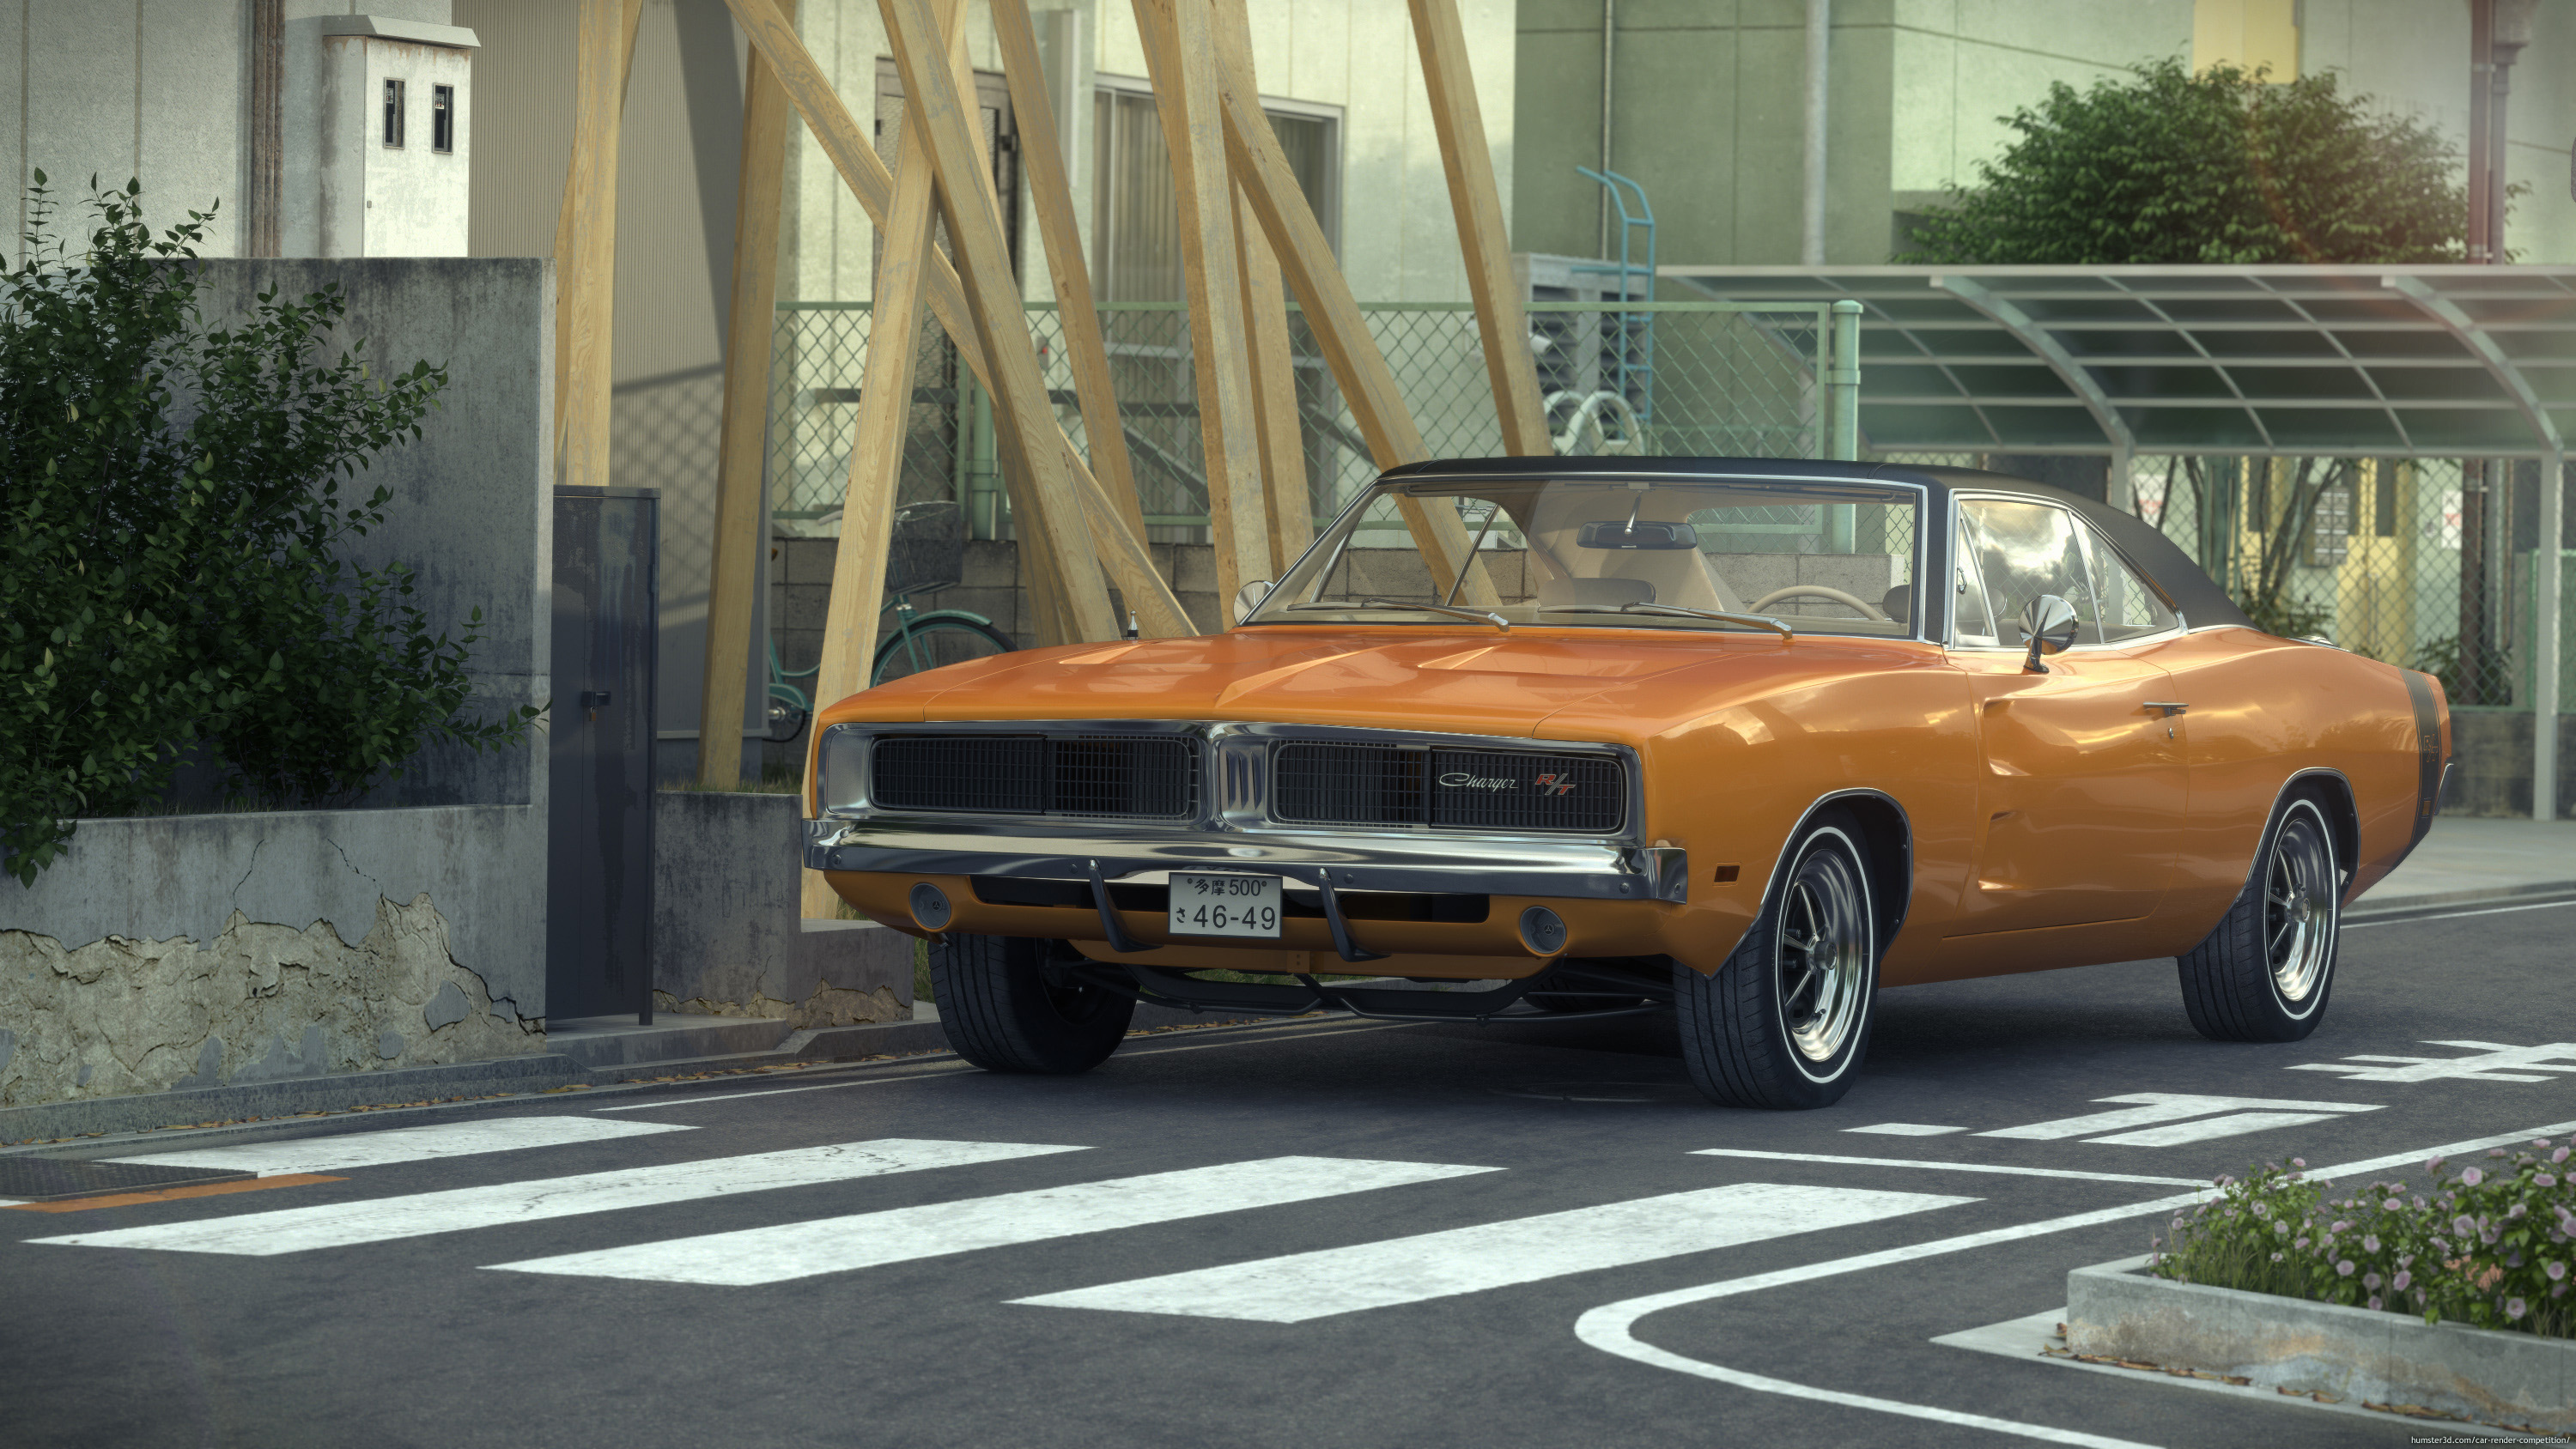 Dodge Charger 1969 RT in Japan 3d art